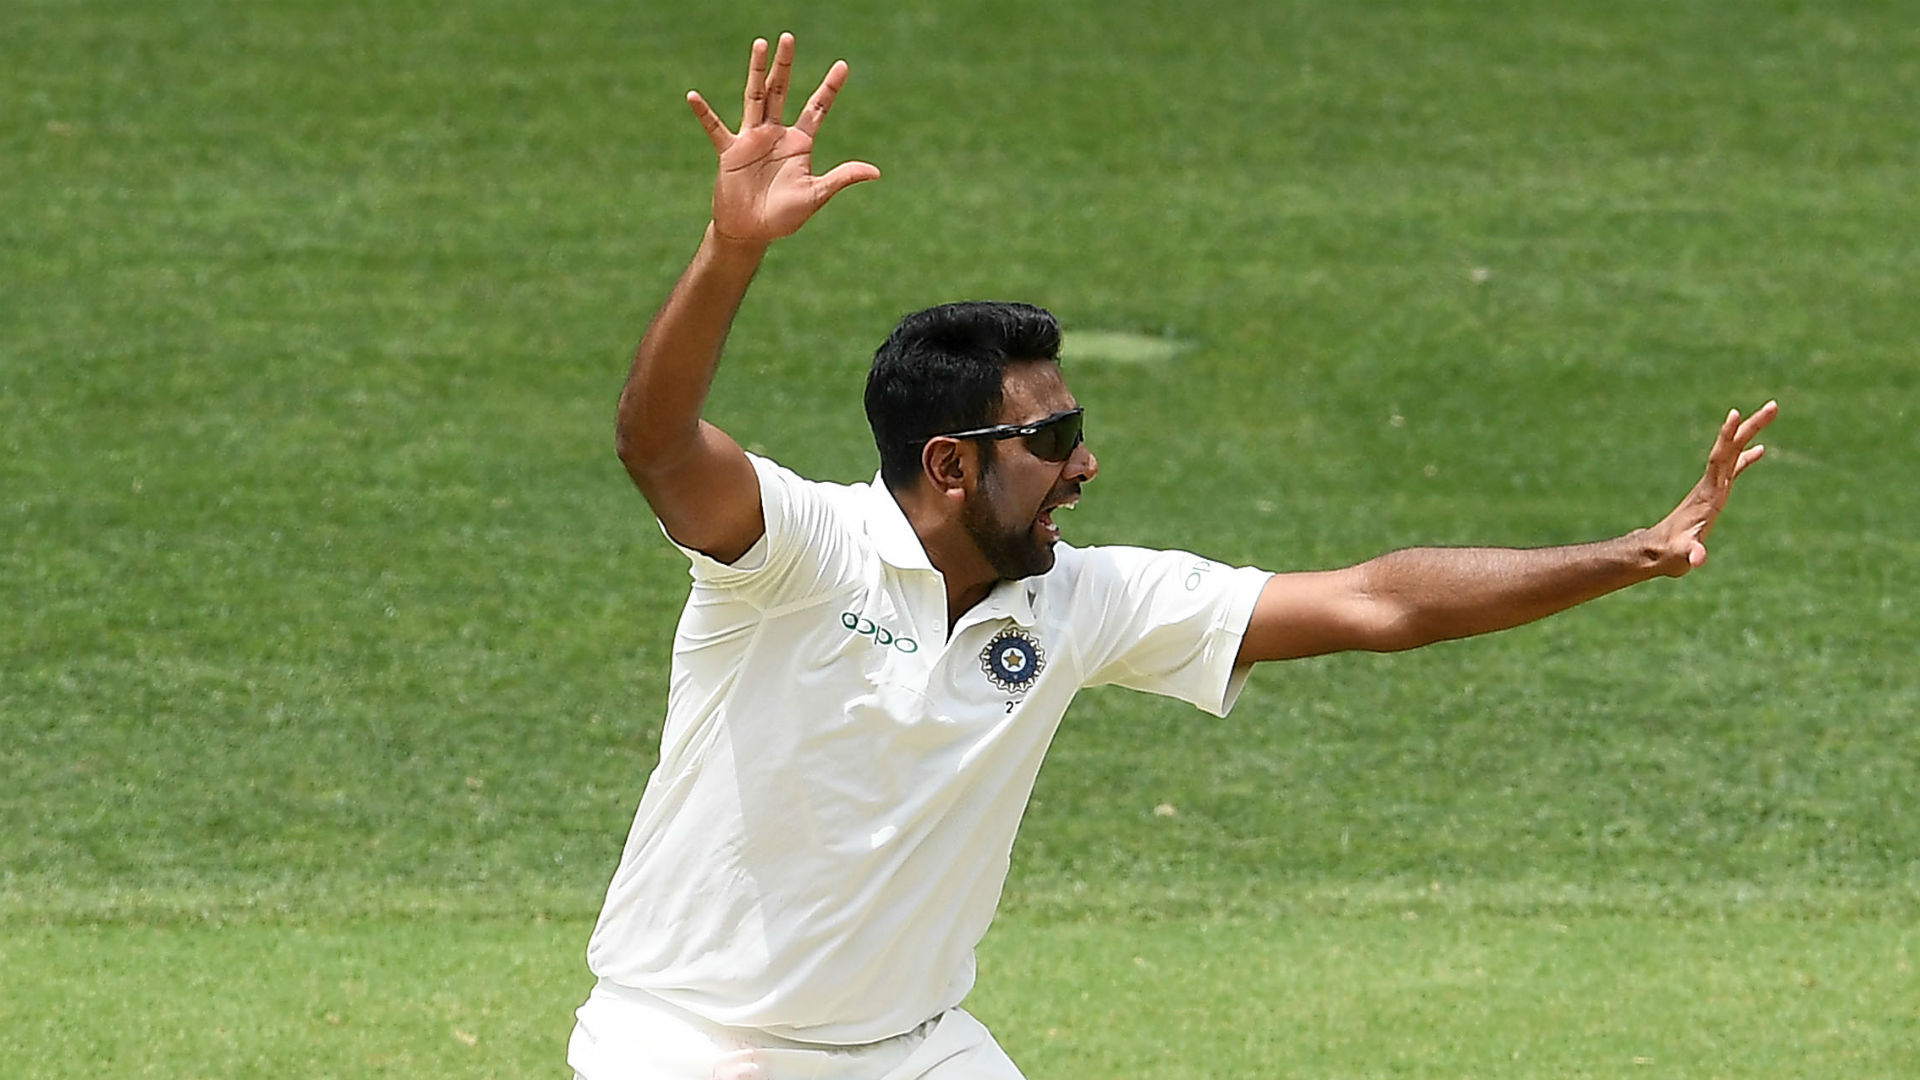 The bowlers have had the upper hand in the opening Test between Australia and India, but Ravichandran Ashwin is not content just yet.